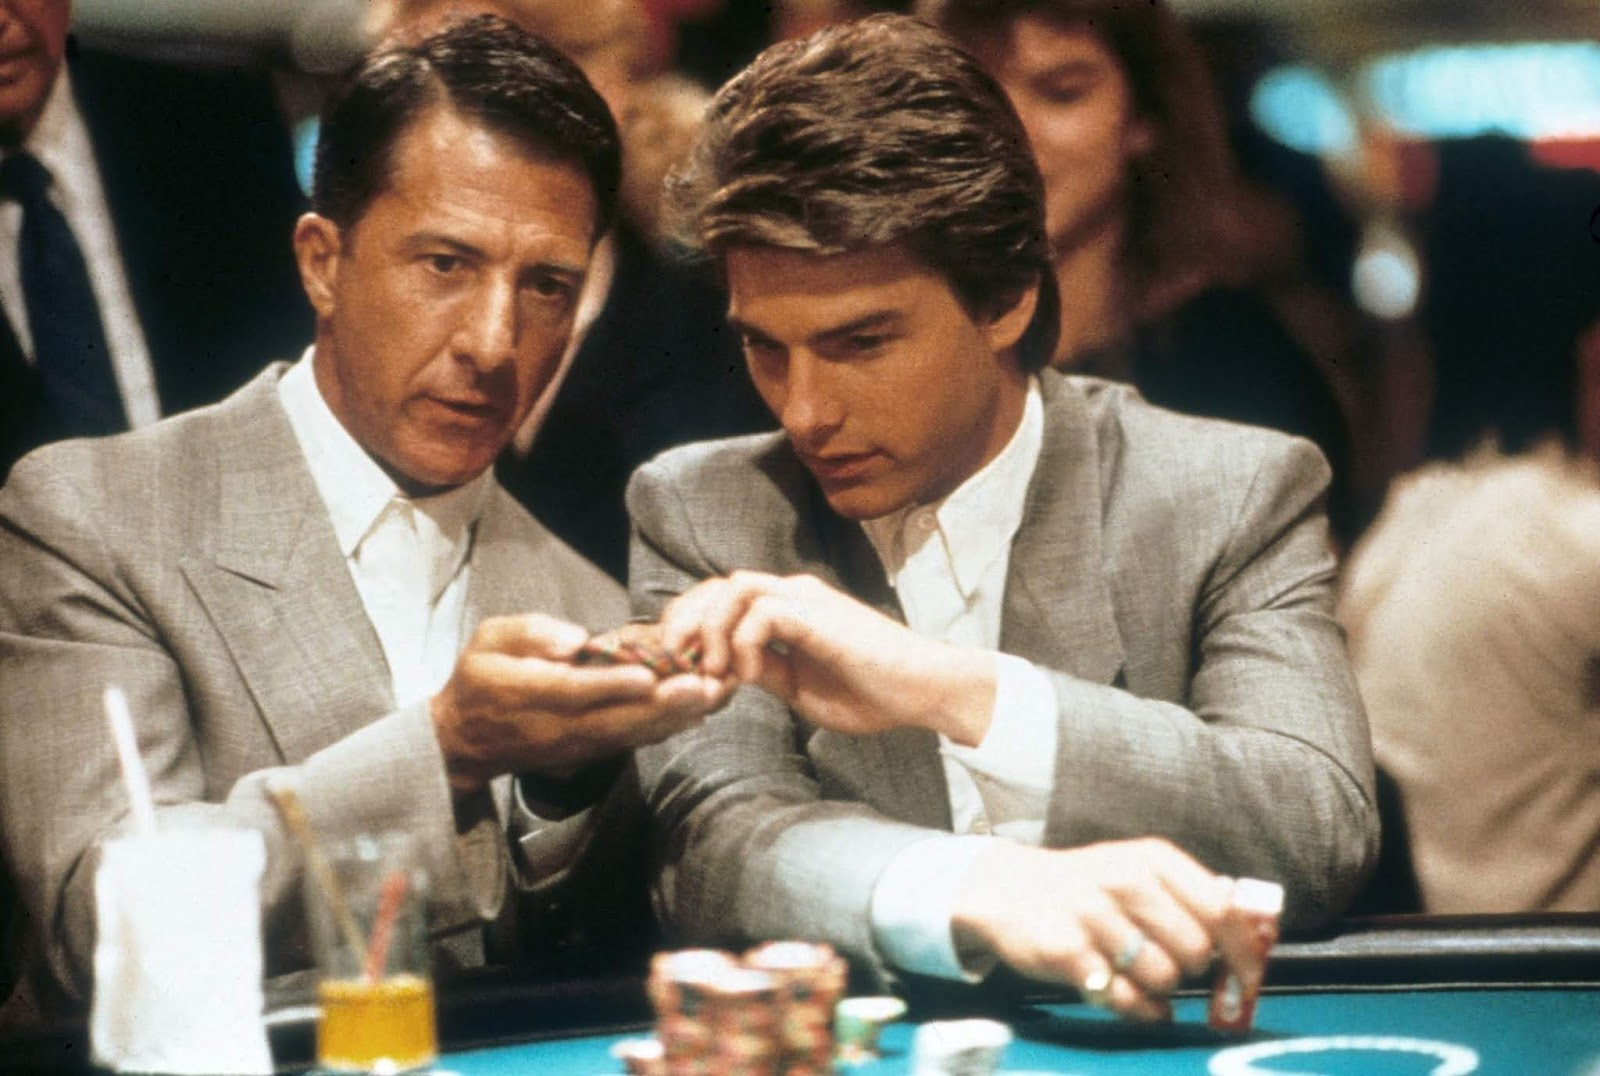 The Best Gambling Movies From the '80s